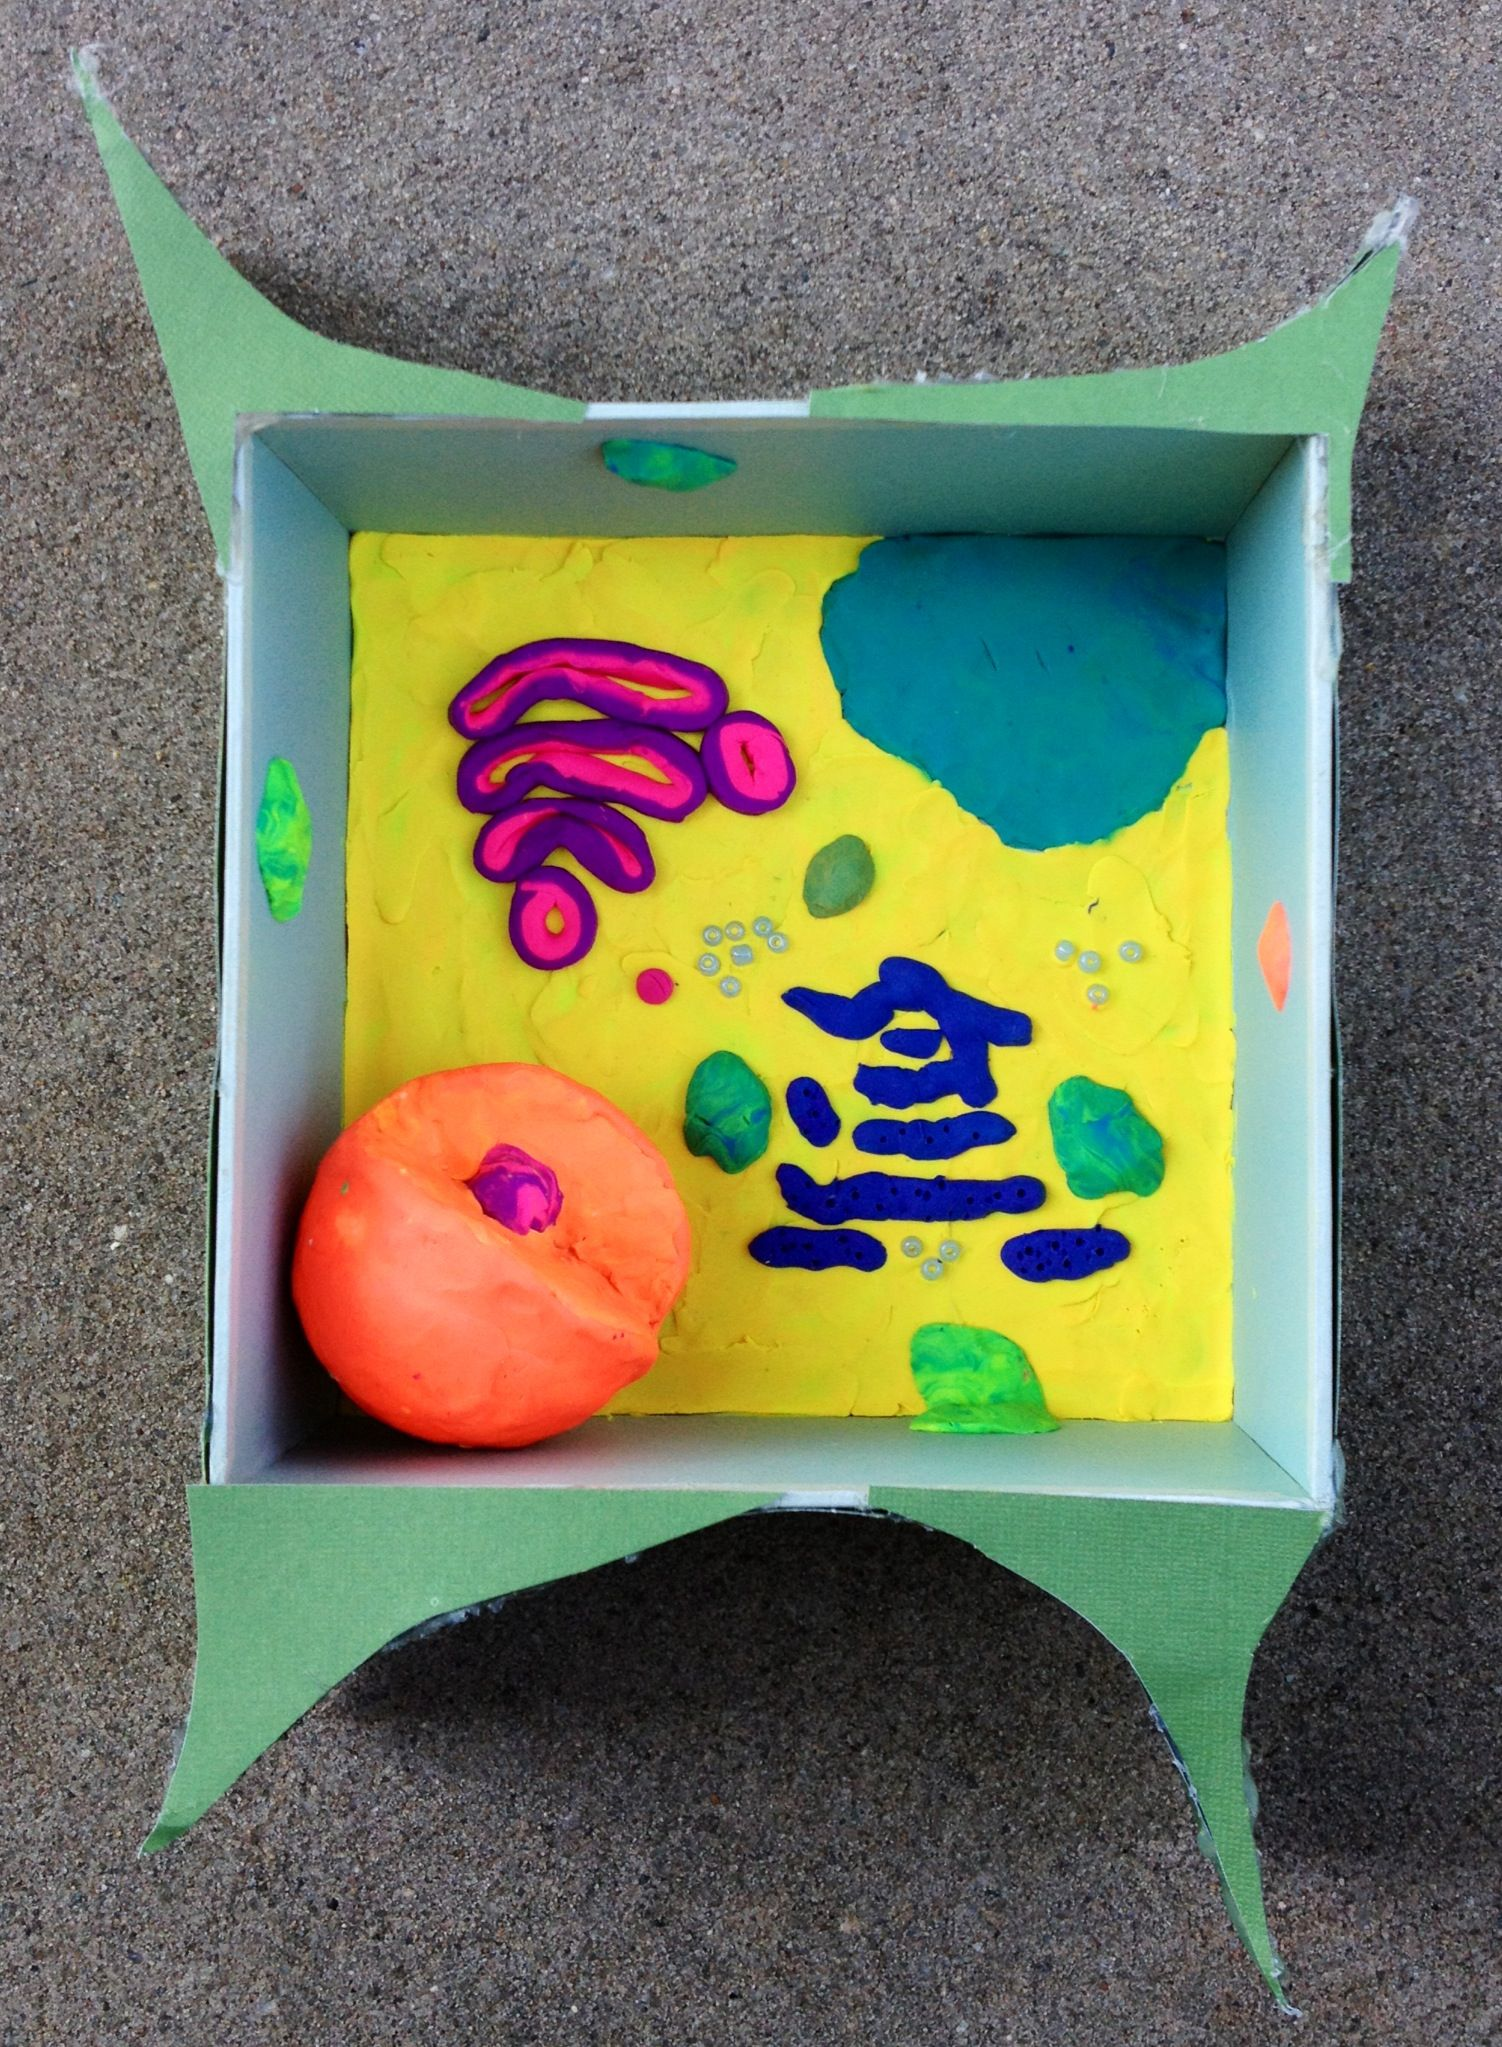 Plant cell model for kids to make